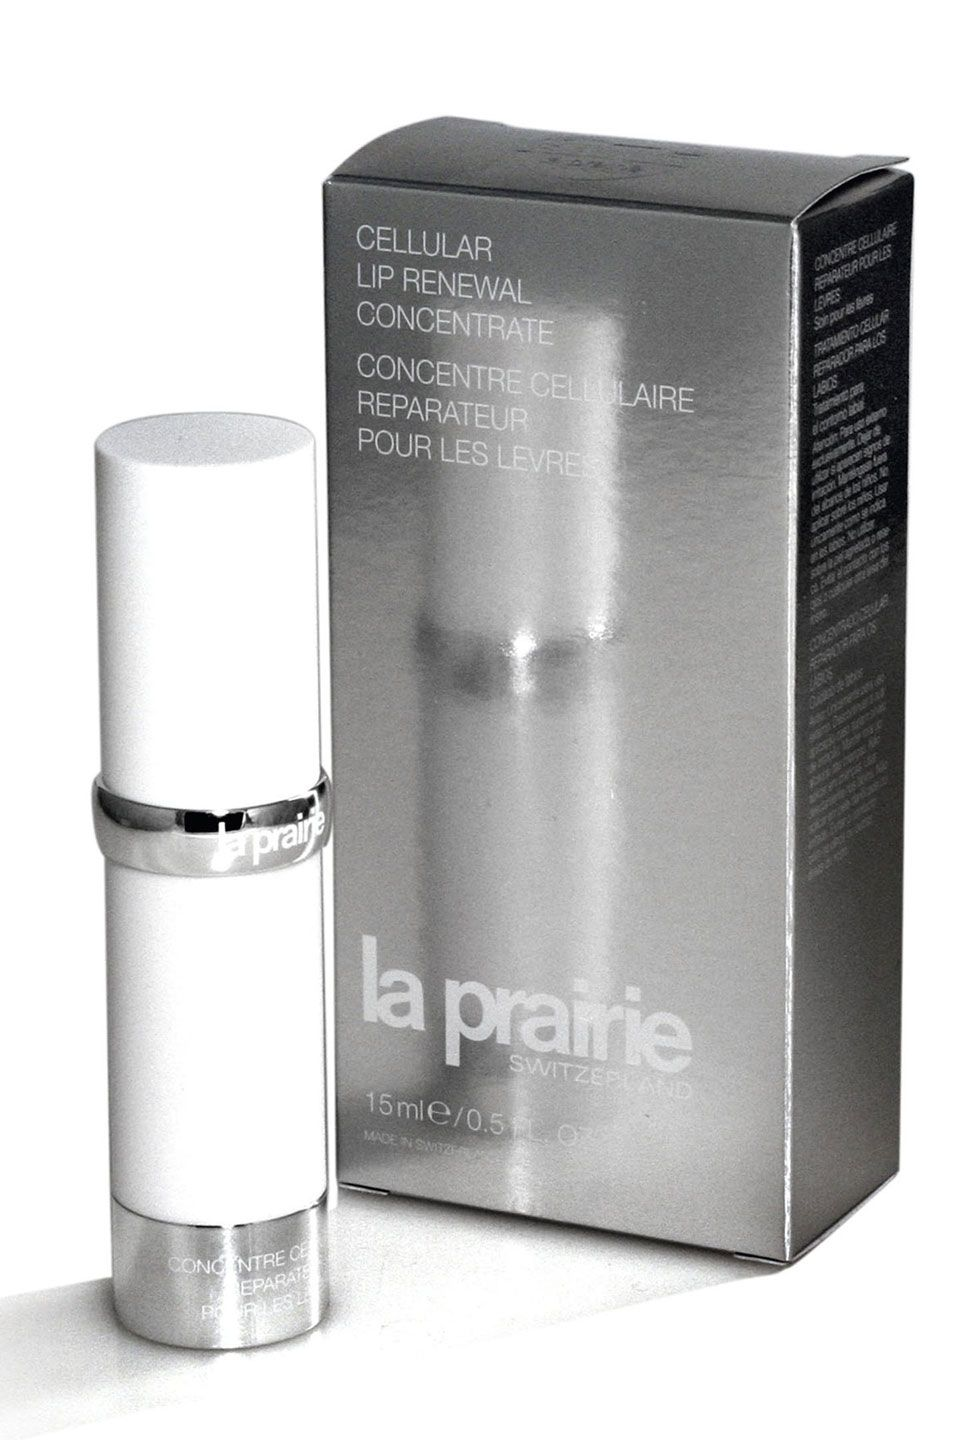 La Prairie Cellular Lip Renewal Concentrate Beyond The Rack Cosmetic Design Philosophy Skin Care Packaging Design